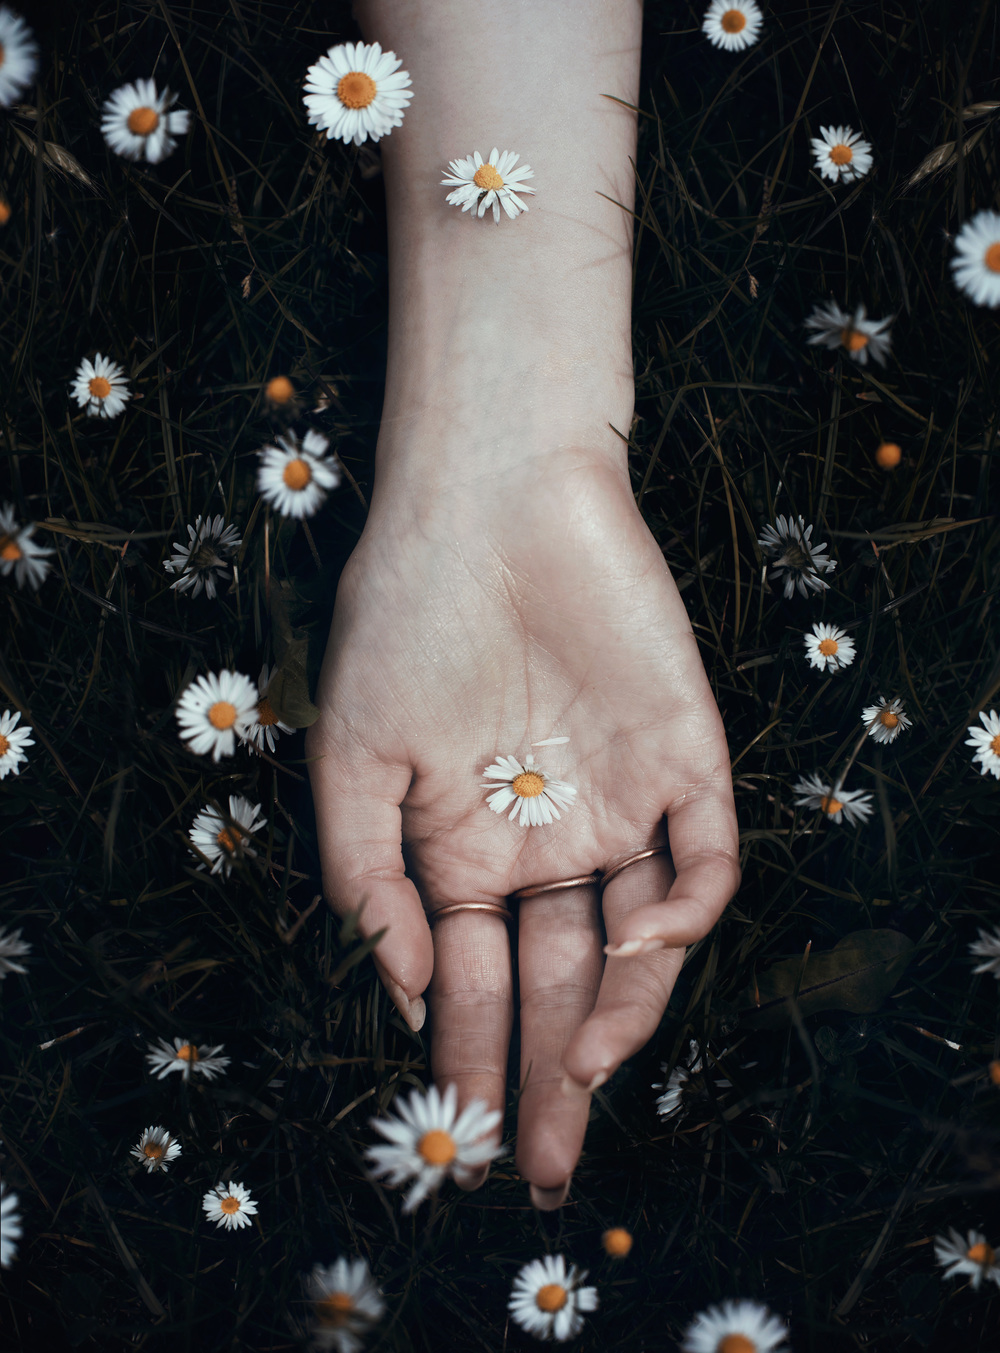 bella-kotak-spring-flowers-blossoms-daisies-daisy-hand-in-bloom-nature-season-fairytale-fantasy-fairytales-magic-magical-fantastical-fae-faerie-ethereal-white-flora-floral-delicate-portrait-fashion-ediorial-blossom-wild-fauna-photography-sml.jpg